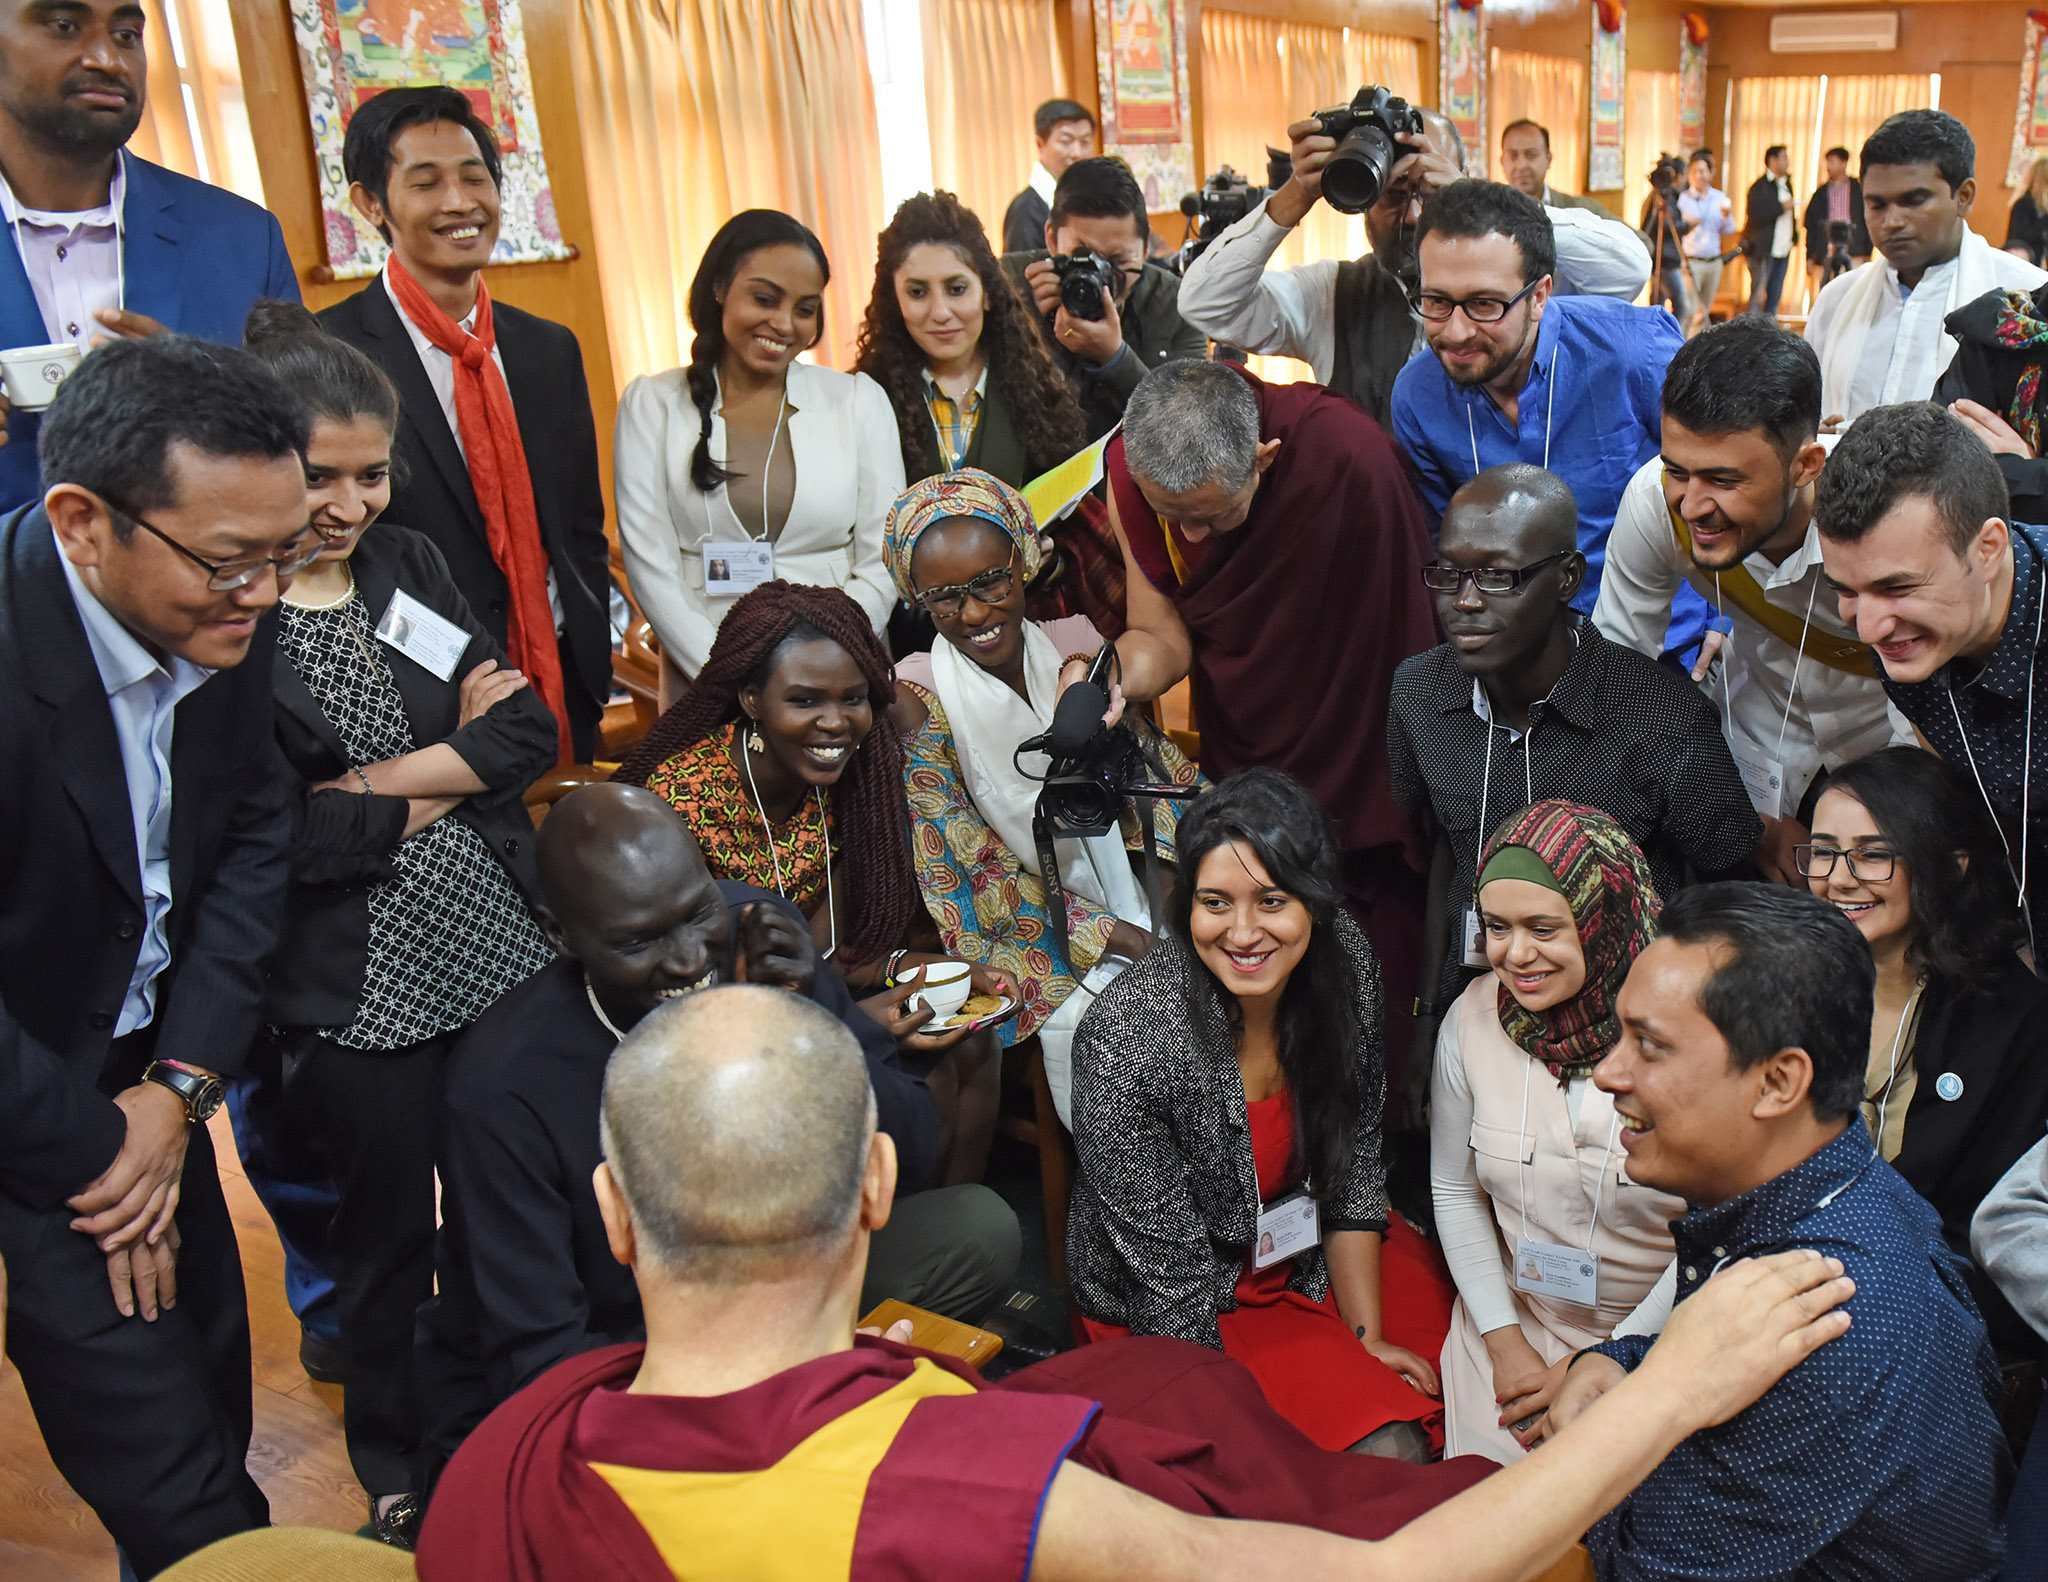 Gatkuoth (center-right in black shirt) says his mentorship by the Dalai Lama and help from USIP have strengthened his work.